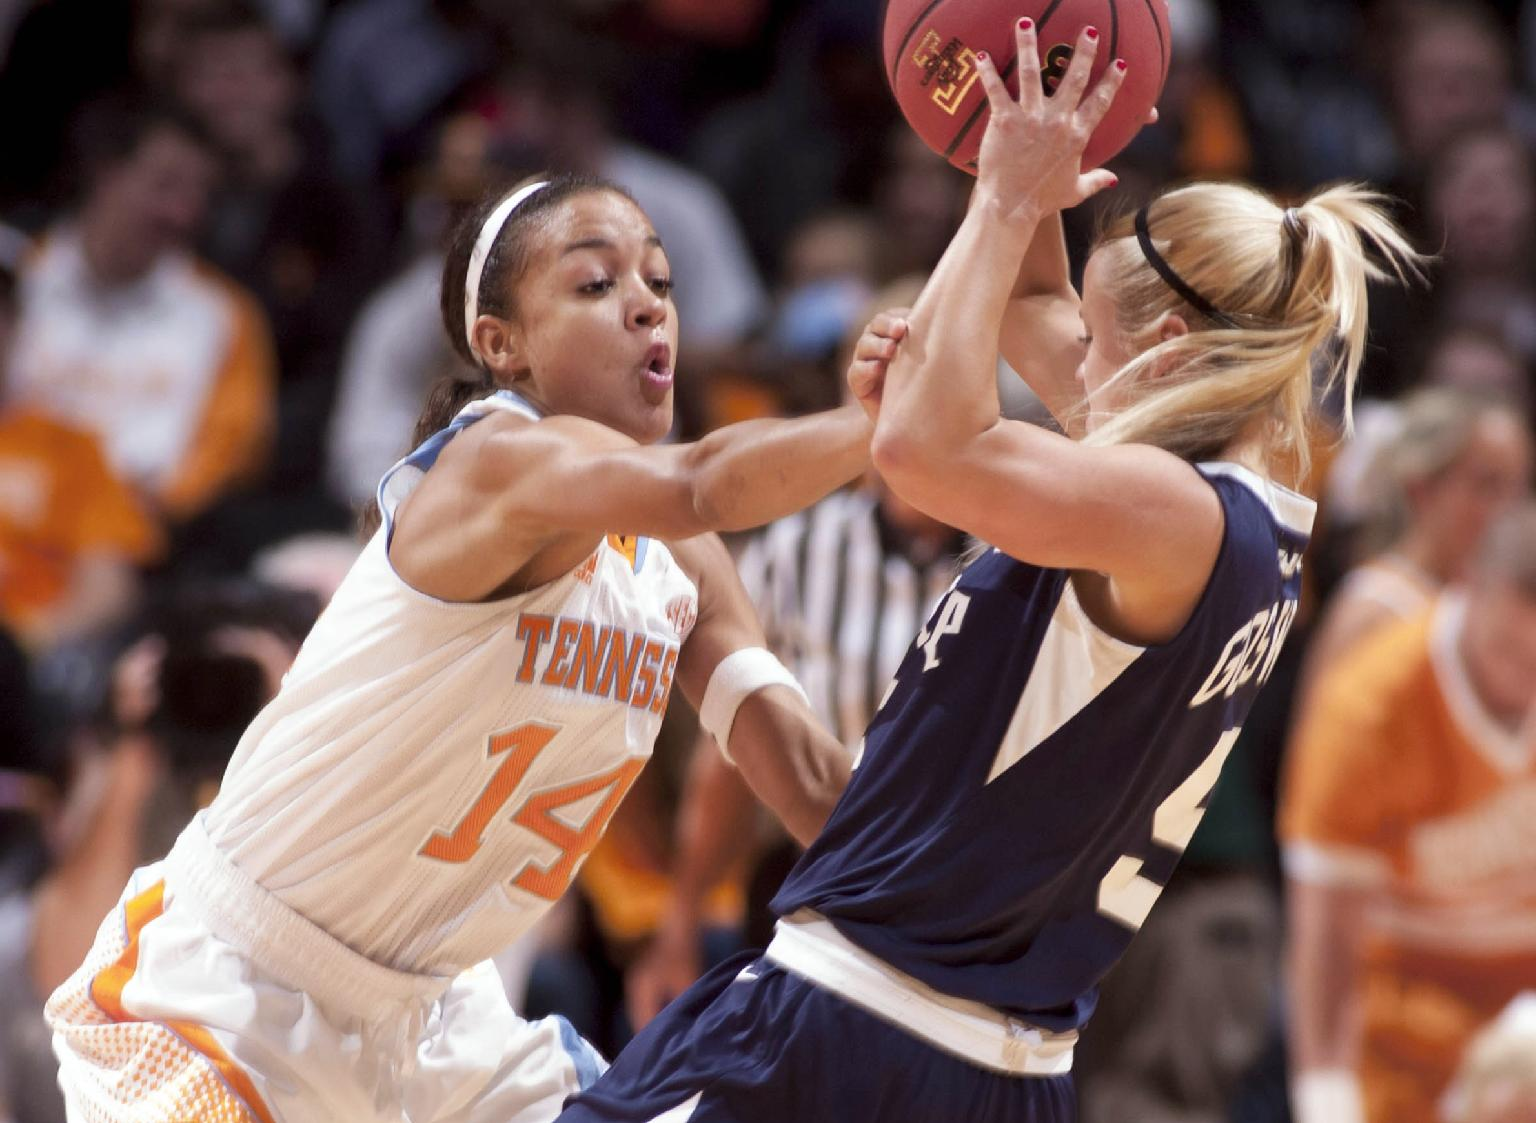 In a photo taken on Nov. 15, 2012, Tennessee guard Andraya Carter, left, pressures Rice University Jessica Goswitz during a NCAA women's college basketball game in Knoxville, Tenn. Carter's teammates say she developed into a team leader as a freshman last year despite missing most of the season with a shoulder injury. Now she's back on the floor and ready to boost a point guard position that lacked depth last season